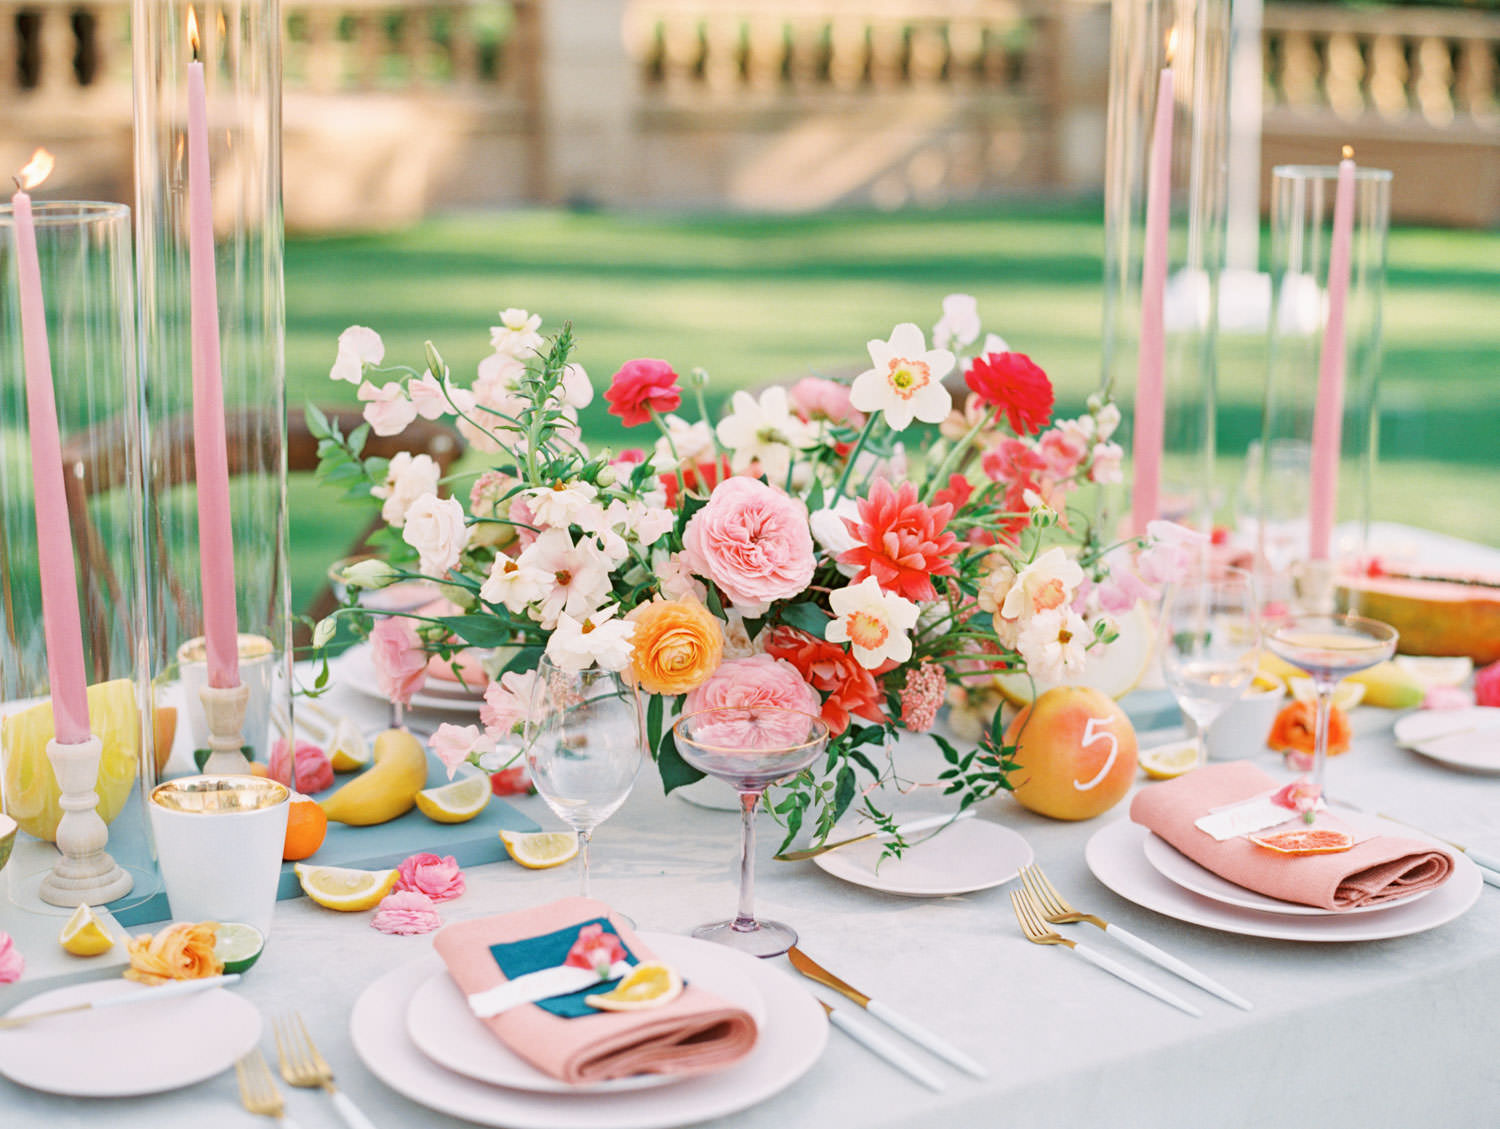 Al fresco reception with table covered in ivory bone velvet linen. Banana escort card. Mauve charger, soft blush plates, coral napkin with grey cloth square on top and hand torn calligraphy place card. Gold flatware with white handles, pink taper candles in hurricanes, and centerpiece with ivory, peach, pink, yellow, and green roses, ranunculus, daffodils, sweet peas, and peonies. A Wedding Photographer's Fairmont Grand Del Mar Wedding